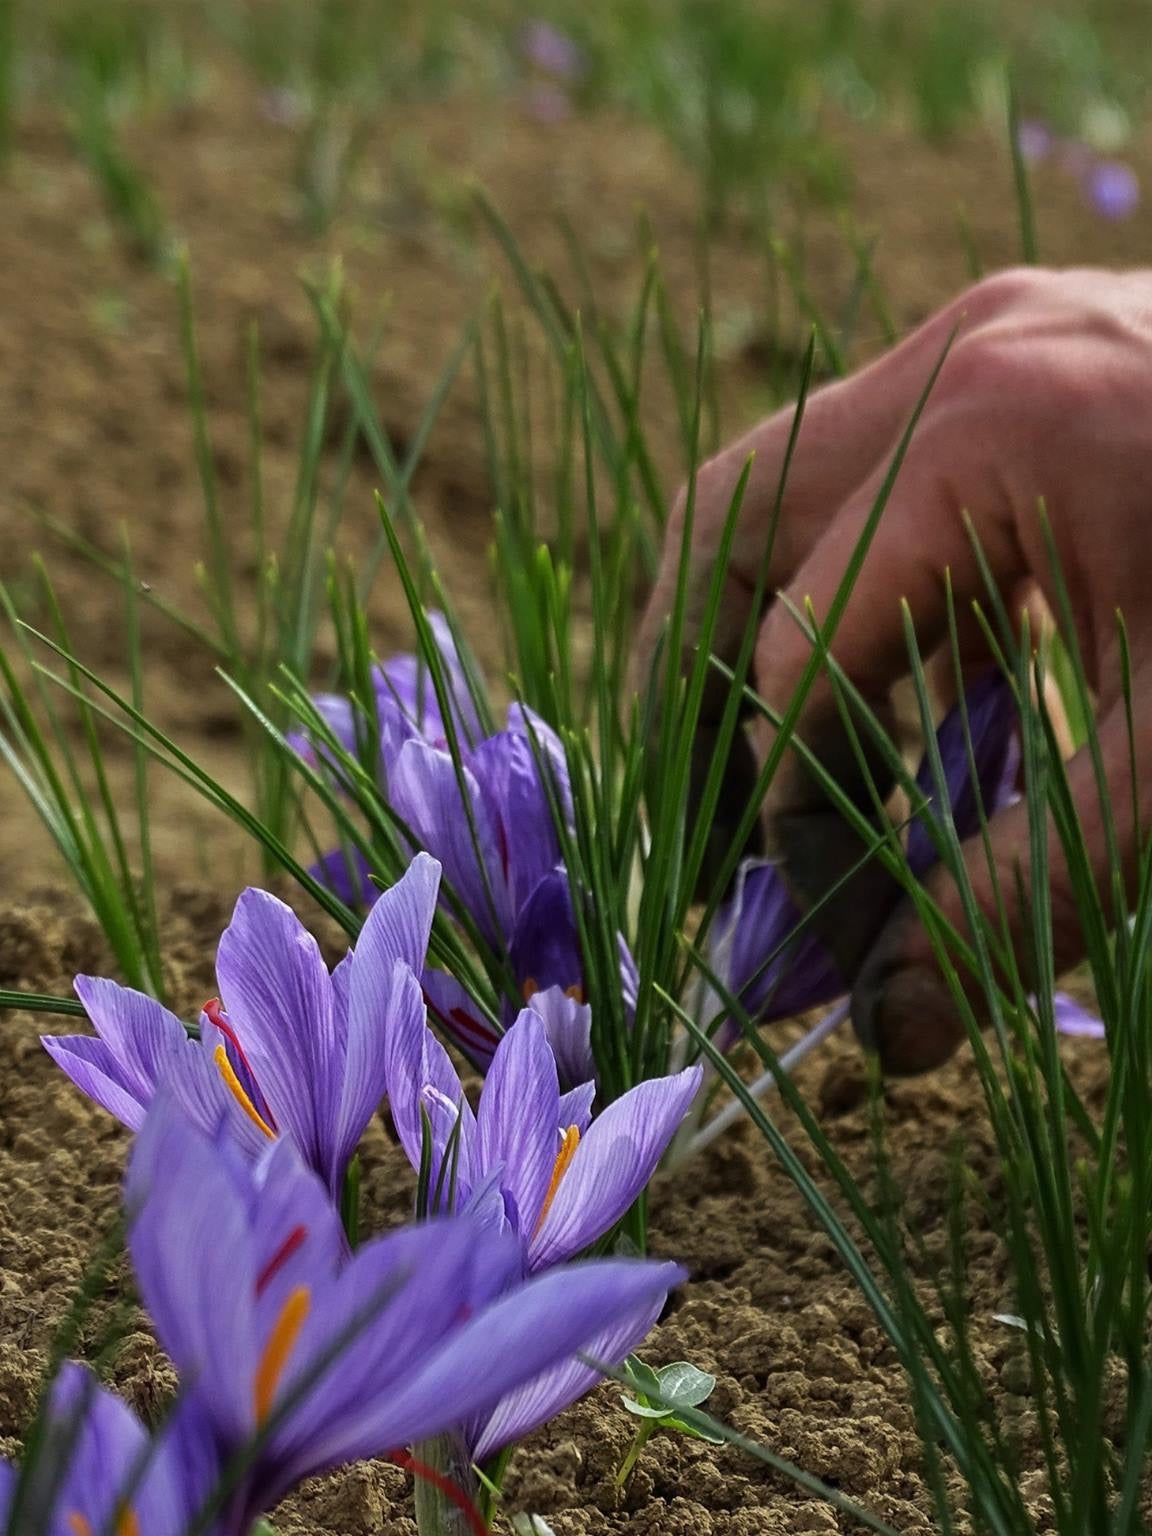 Saffron flowers - saffron picking - Why is saffron the most expensive spice in the world